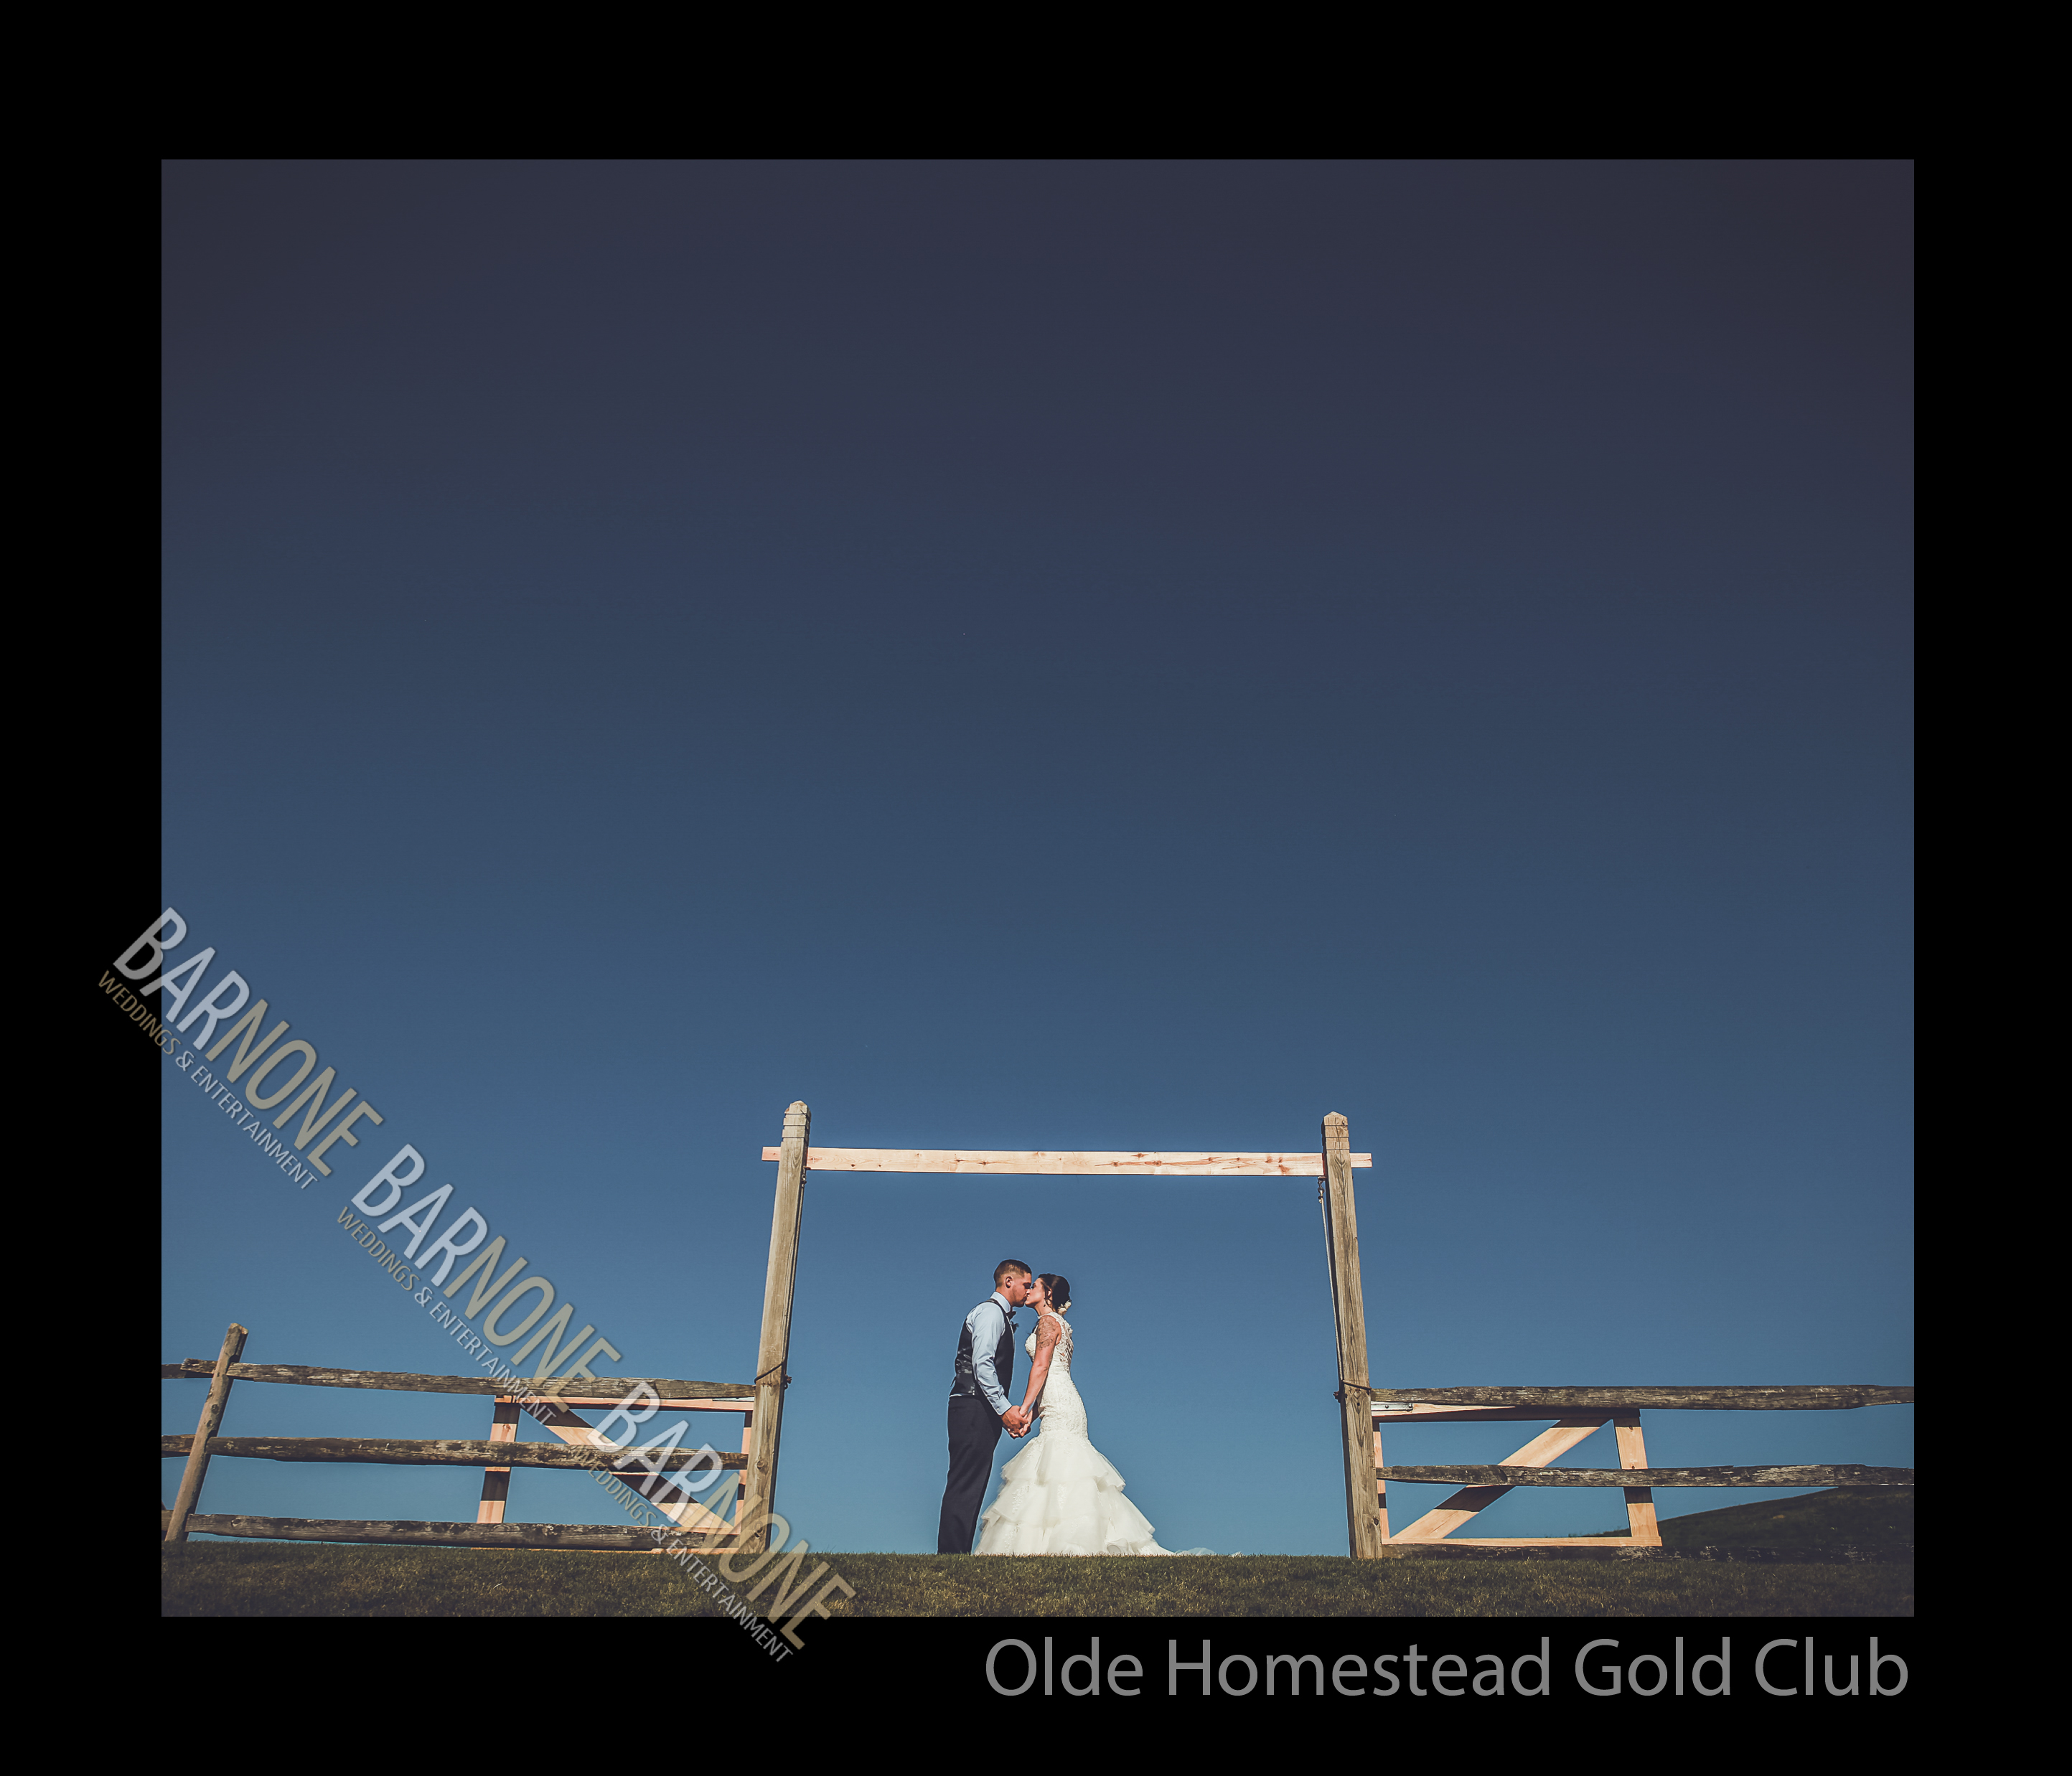 Olde Homestead Wedding Photography - Bar None Photography